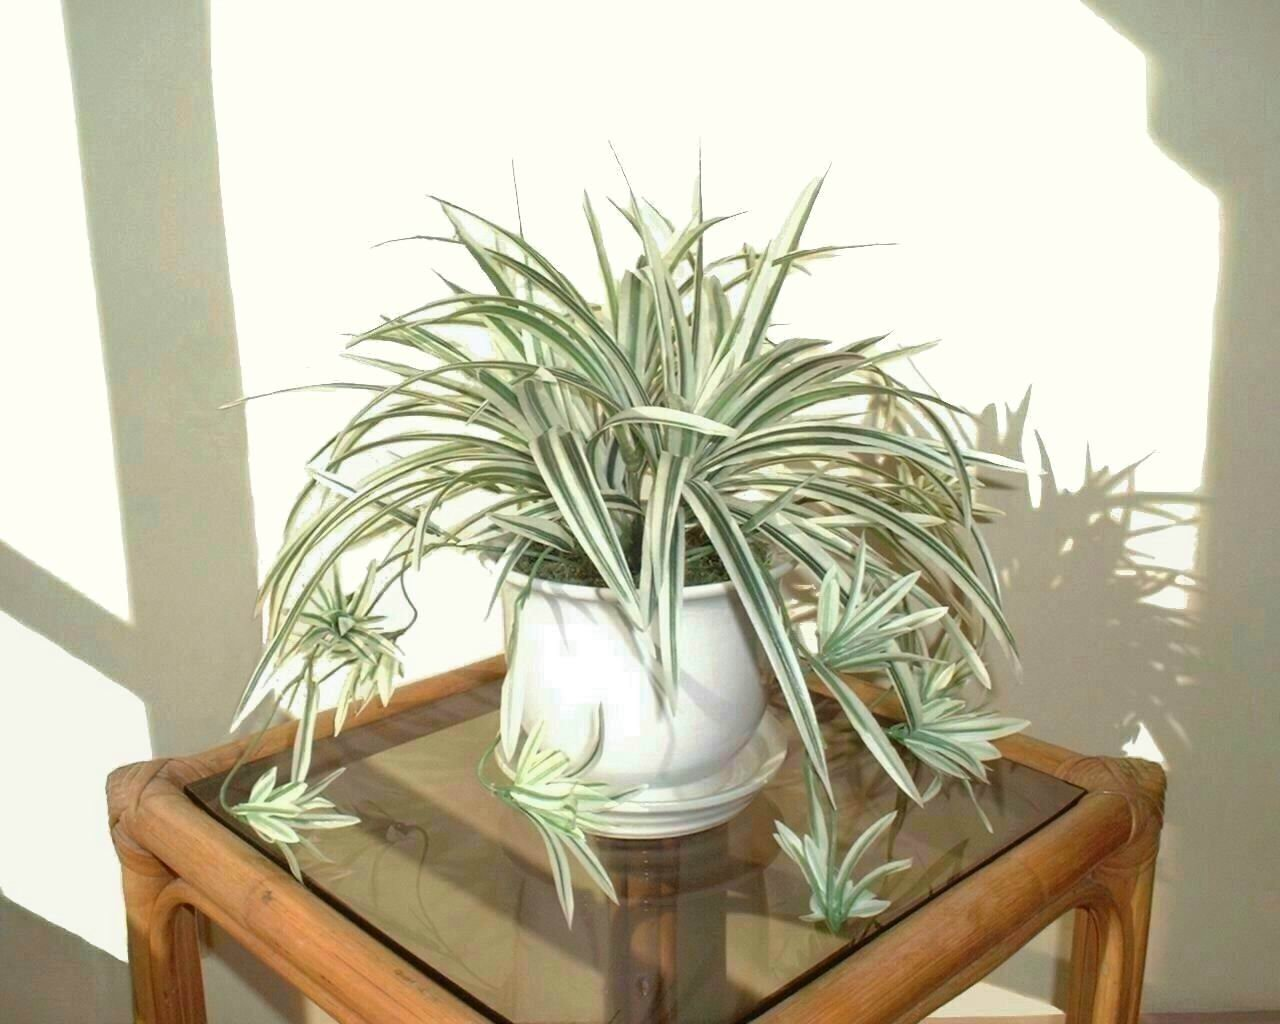 Green Spider Plants Chlorophytum comosum Young daughter plants SINGLES